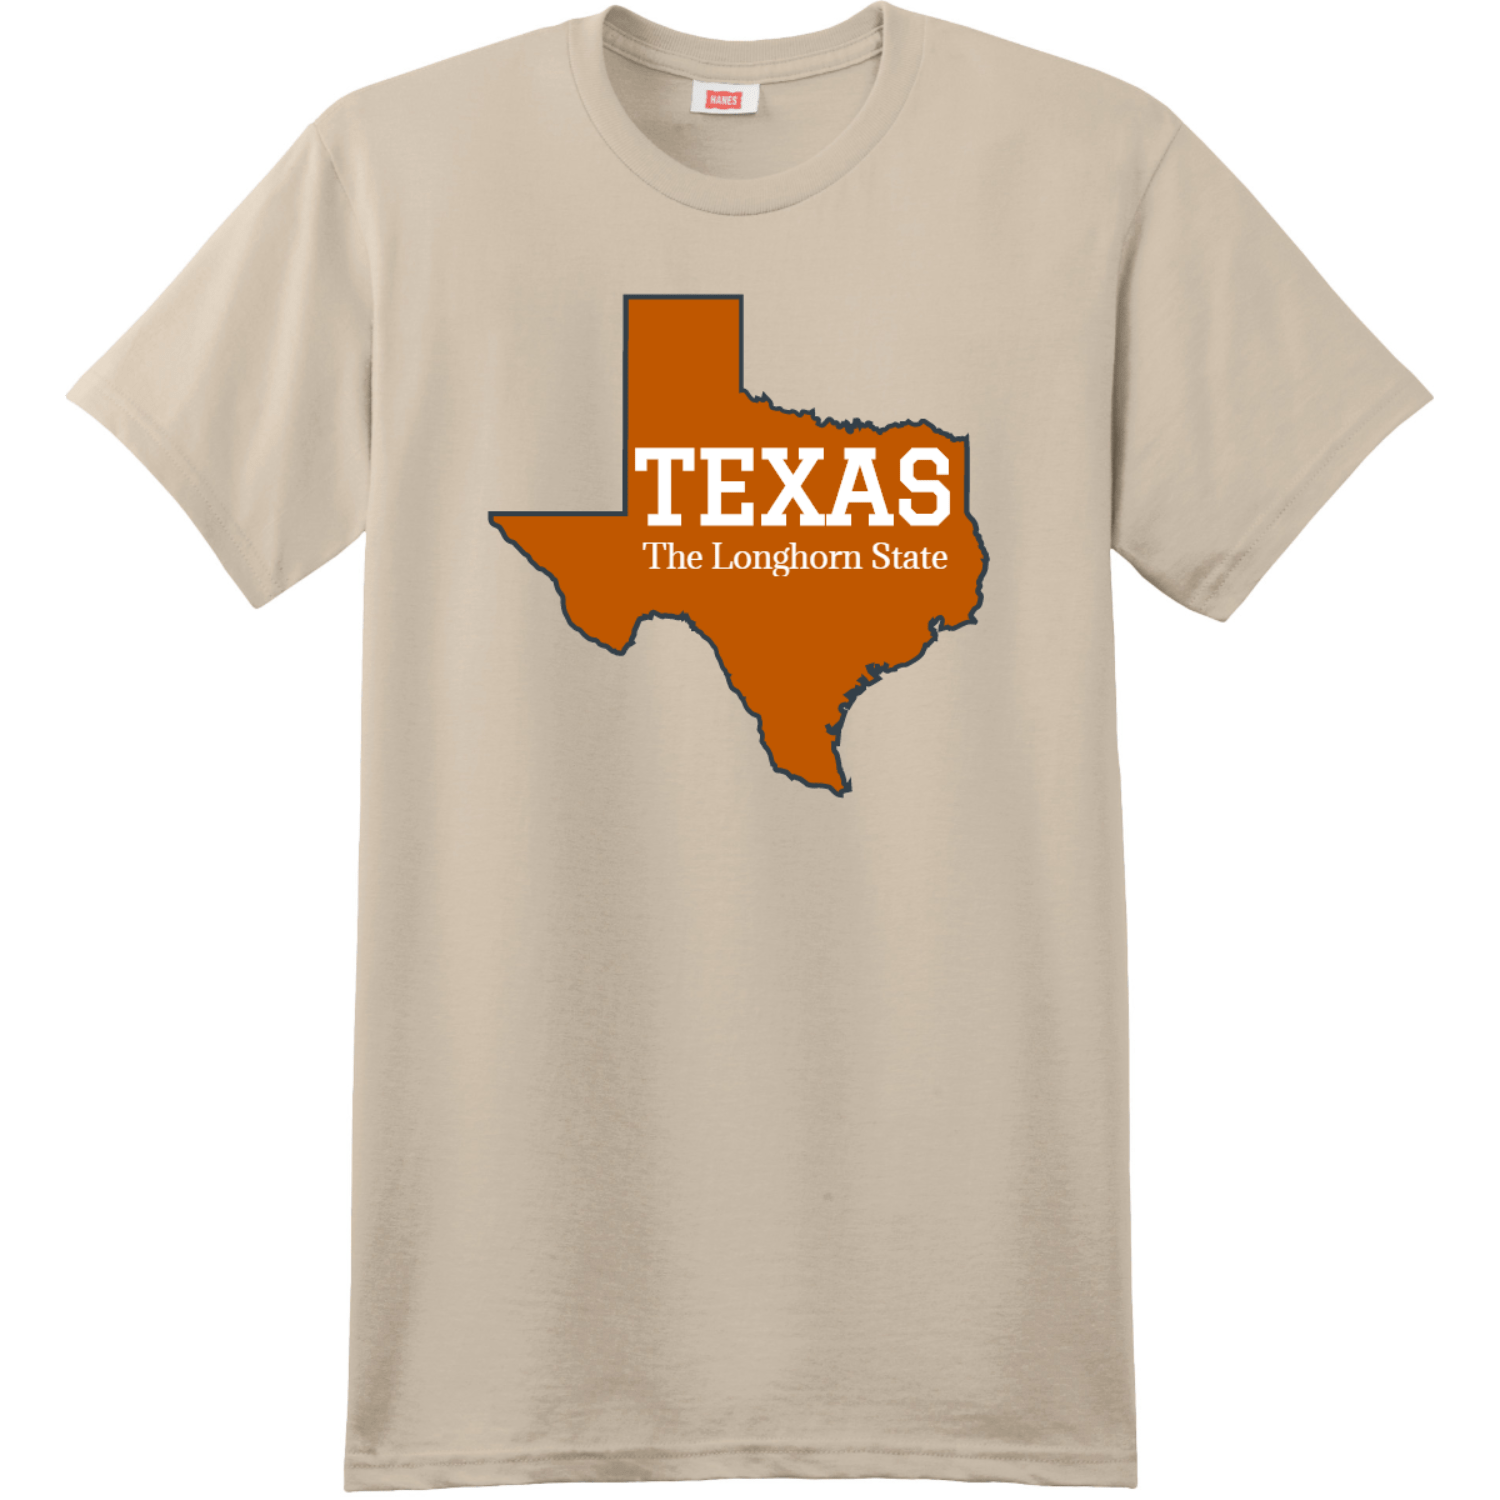 Texas The Longhorn State T Shirt Sand Hanes Nano 4980 Ringspun Cotton T Shirt